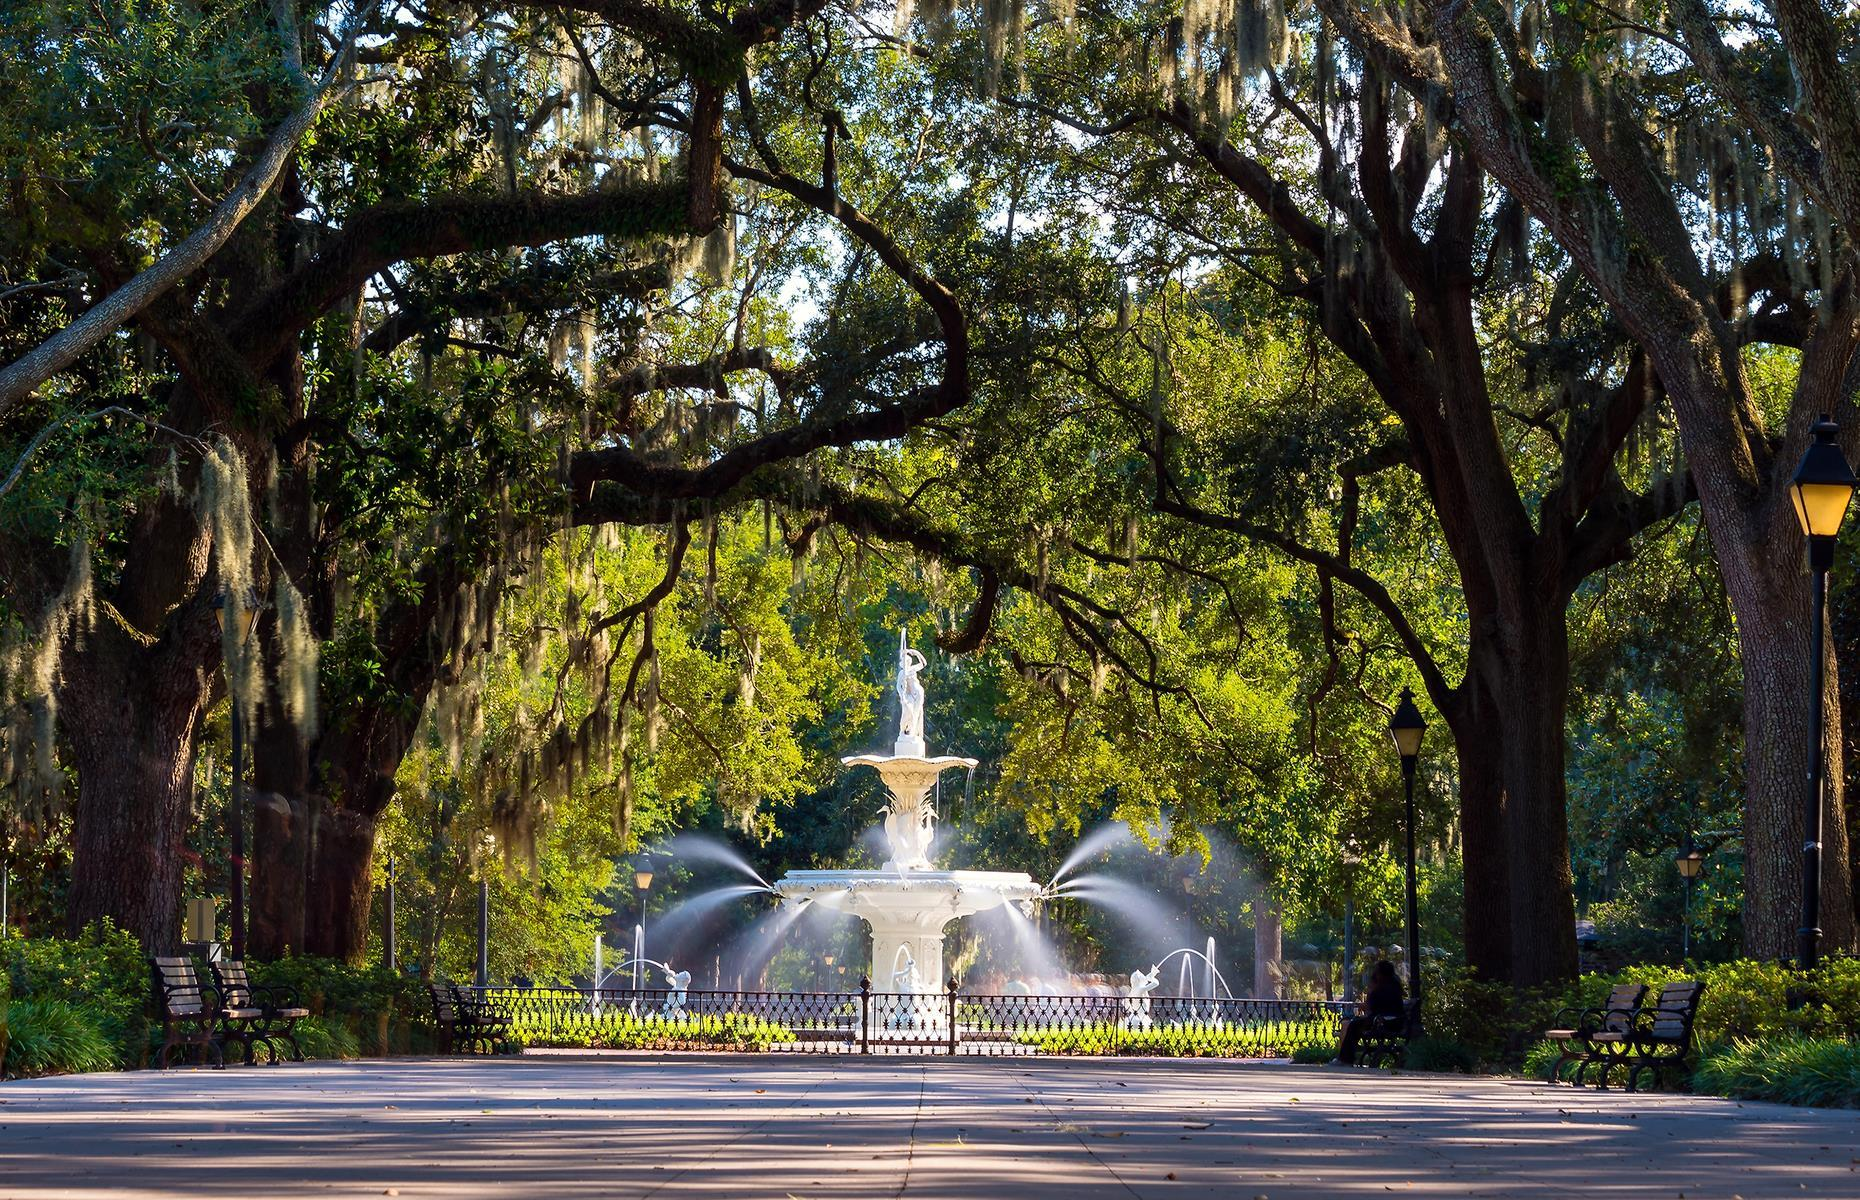 Slide 20 of 41: Savannah's historic center is one the largest National Historic Landmark districts in the country, and pretty Forsyth Fountain is at its heart. With its canopies of ancient oak trees, bearded with Spanish moss, Forsyth Park is a stunning urban green space. However there's also no escaping the Georgian city's past which is inextricably linked with slavery – the grand old homes tell of wealth acquired through an enslaved workforce's cultivation of cotton and rice.